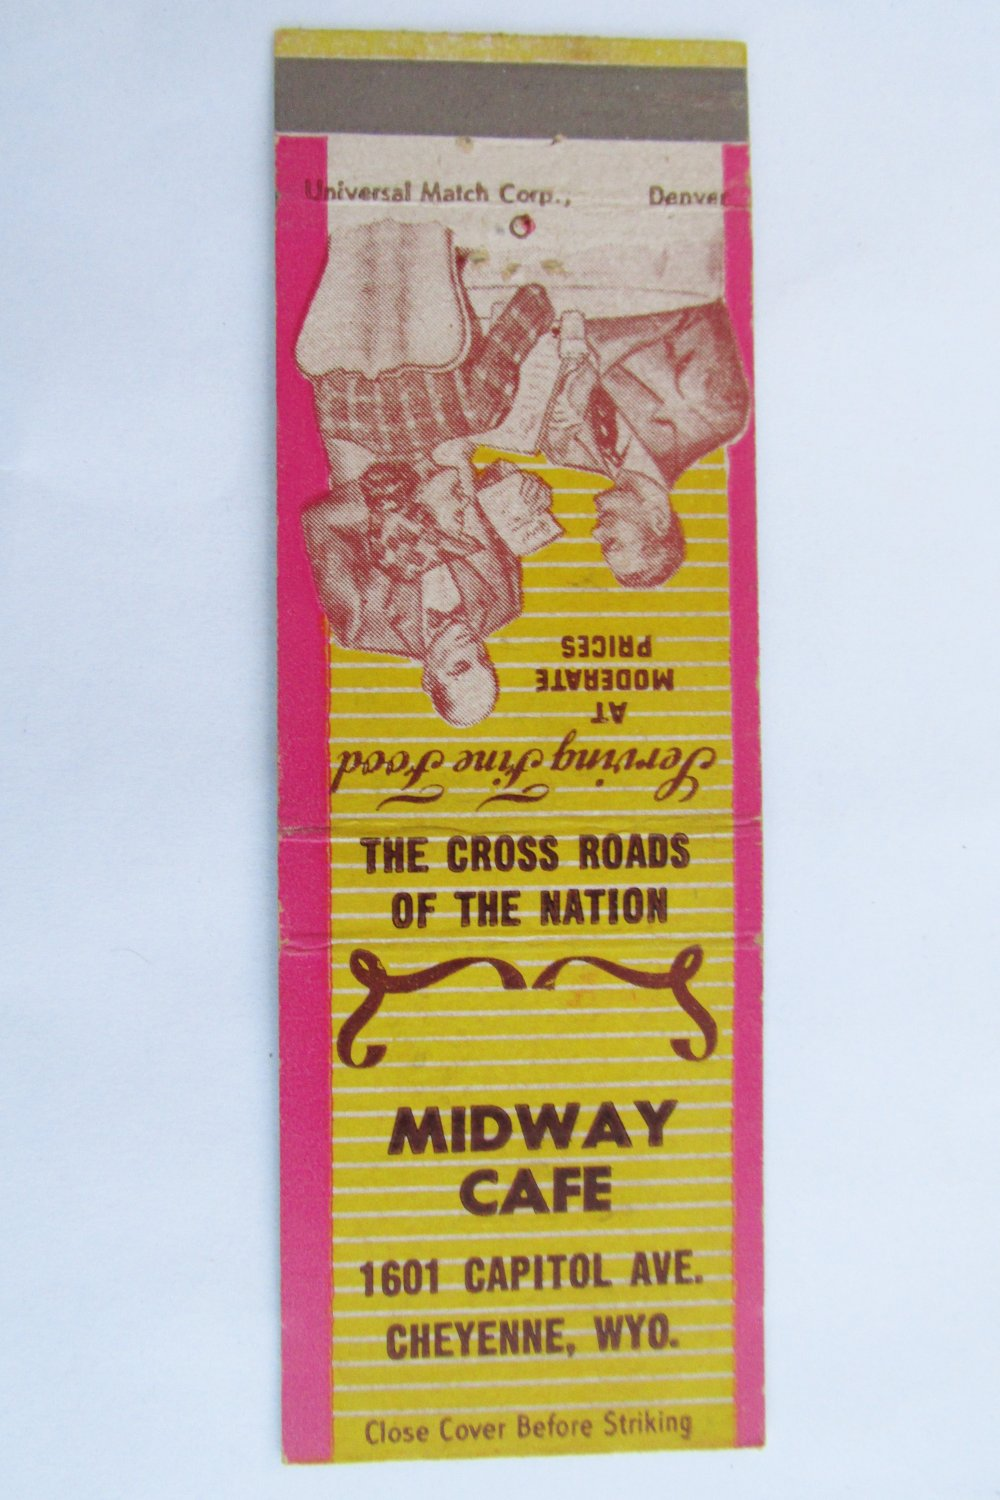 Midway Cafe Cheyenne, Wyoming Restaurant 20 Strike Matchbook Cover WY Matchcover